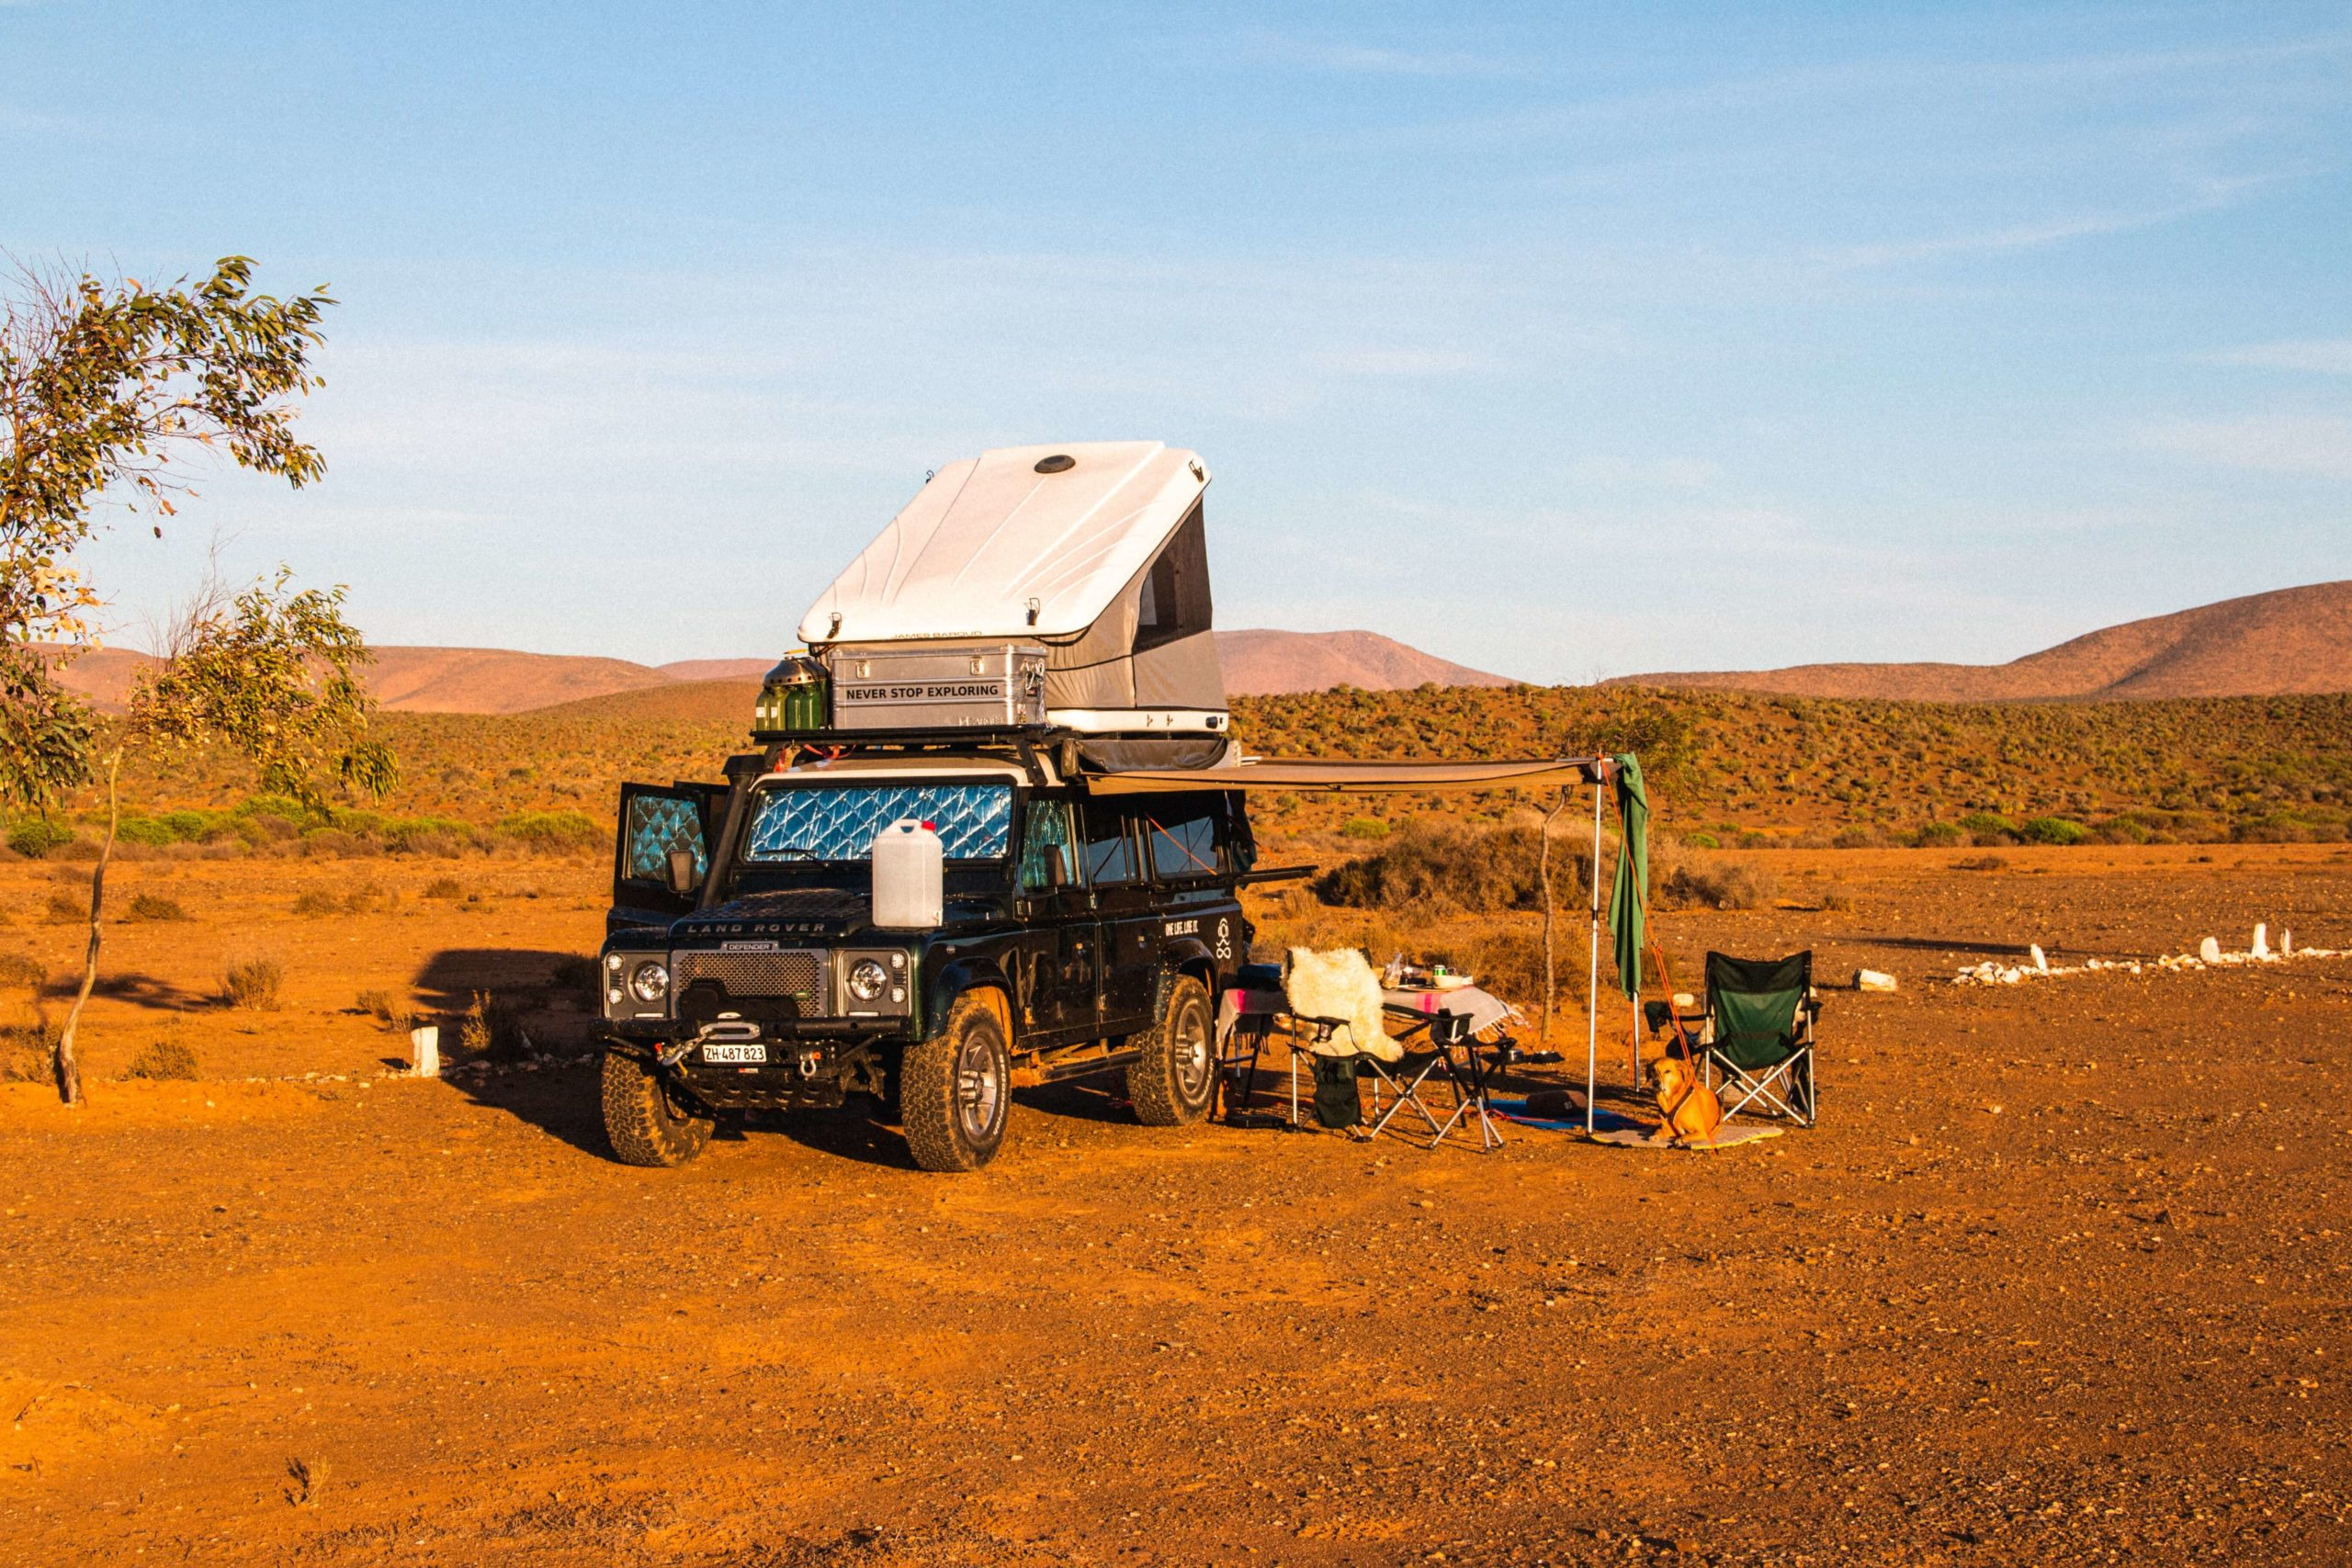 What's it like to sleep in a rooftop tent?